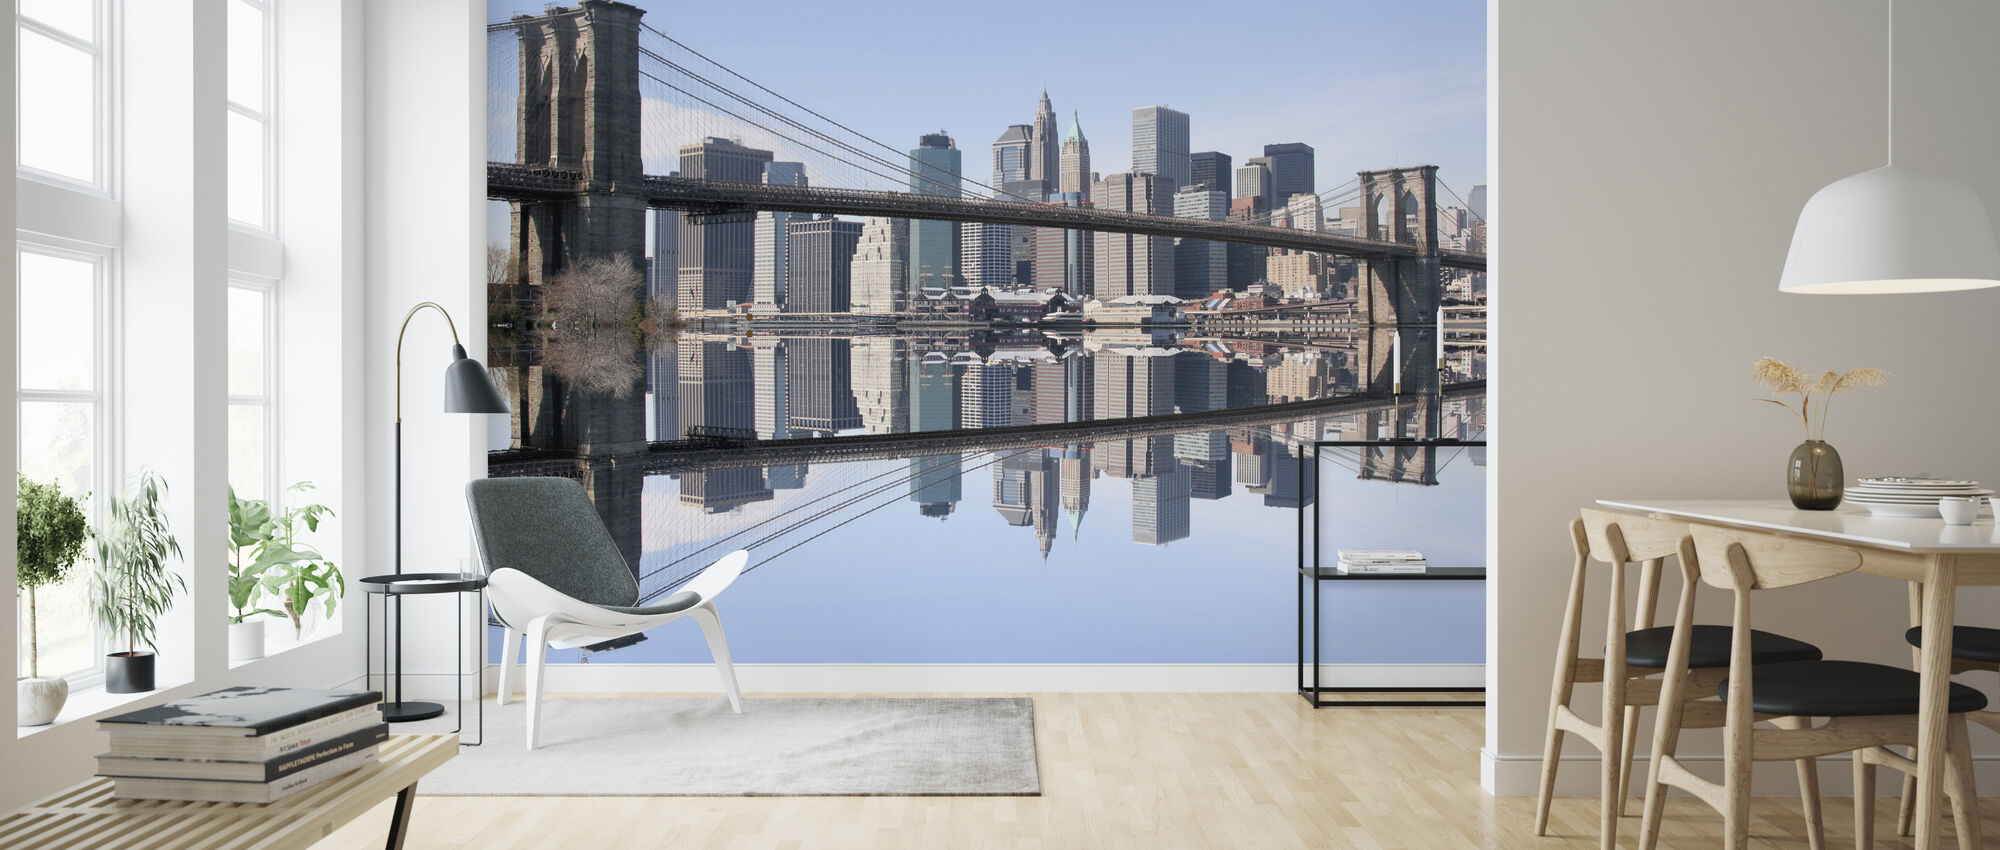 Brooklyn Bridge Clear Blue Day - Wallpaper - Living Room